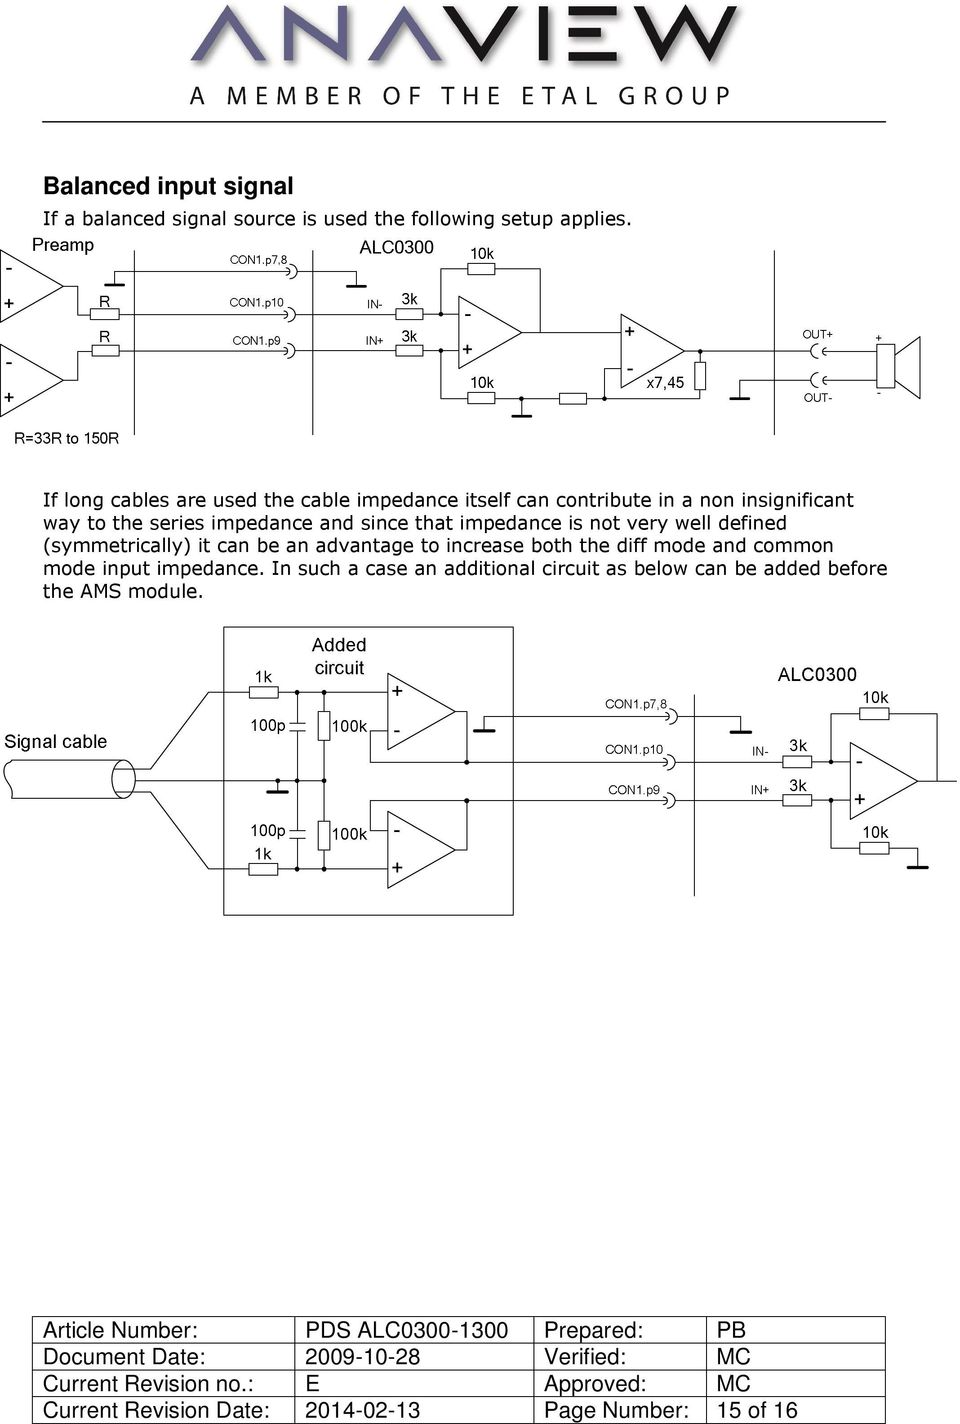 since that impedance is not very well defined (symmetrically) it can be an advantage to increase both the diff mode and